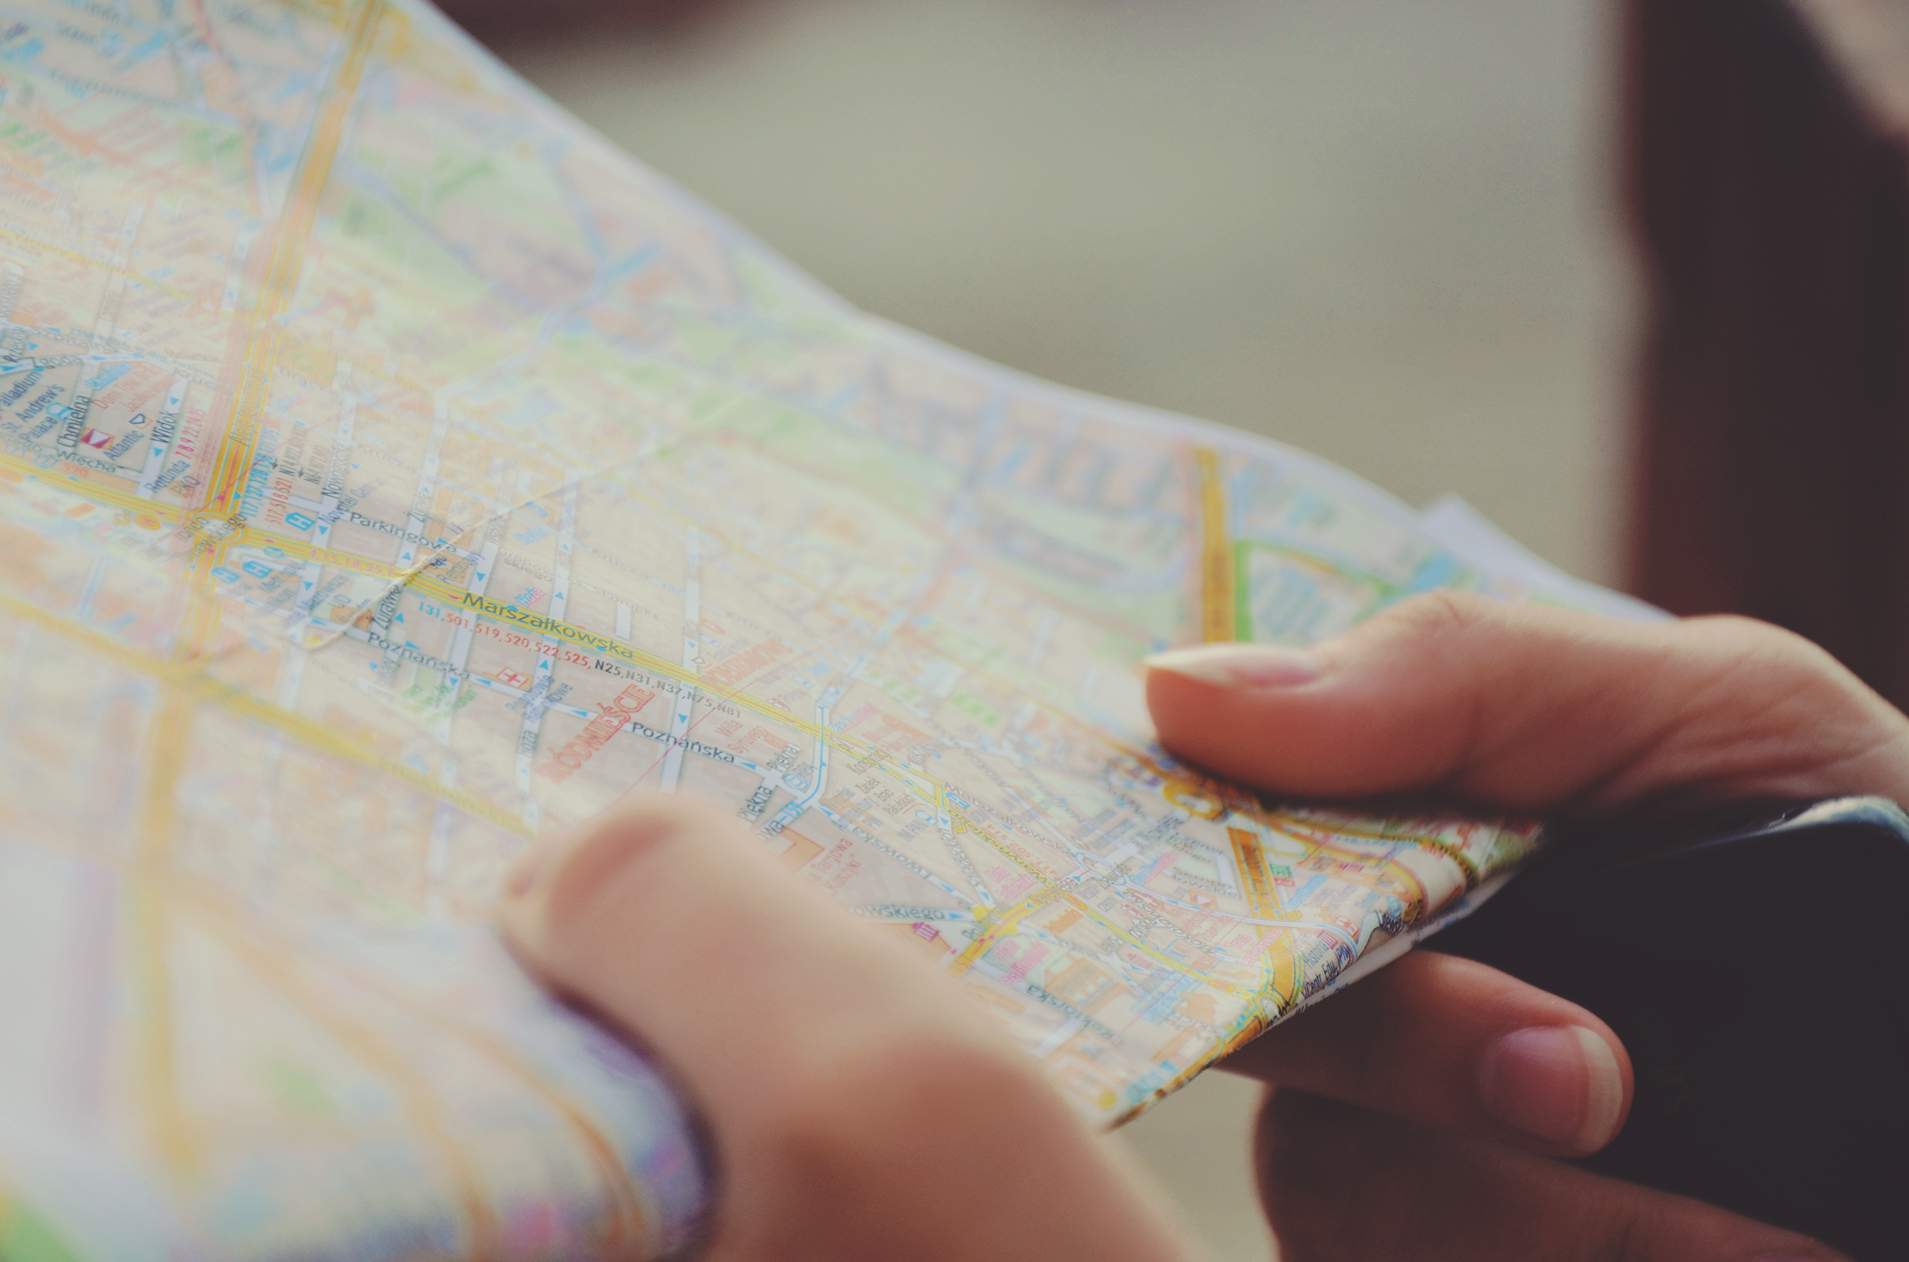 You are here.You want to get there. - We can help.